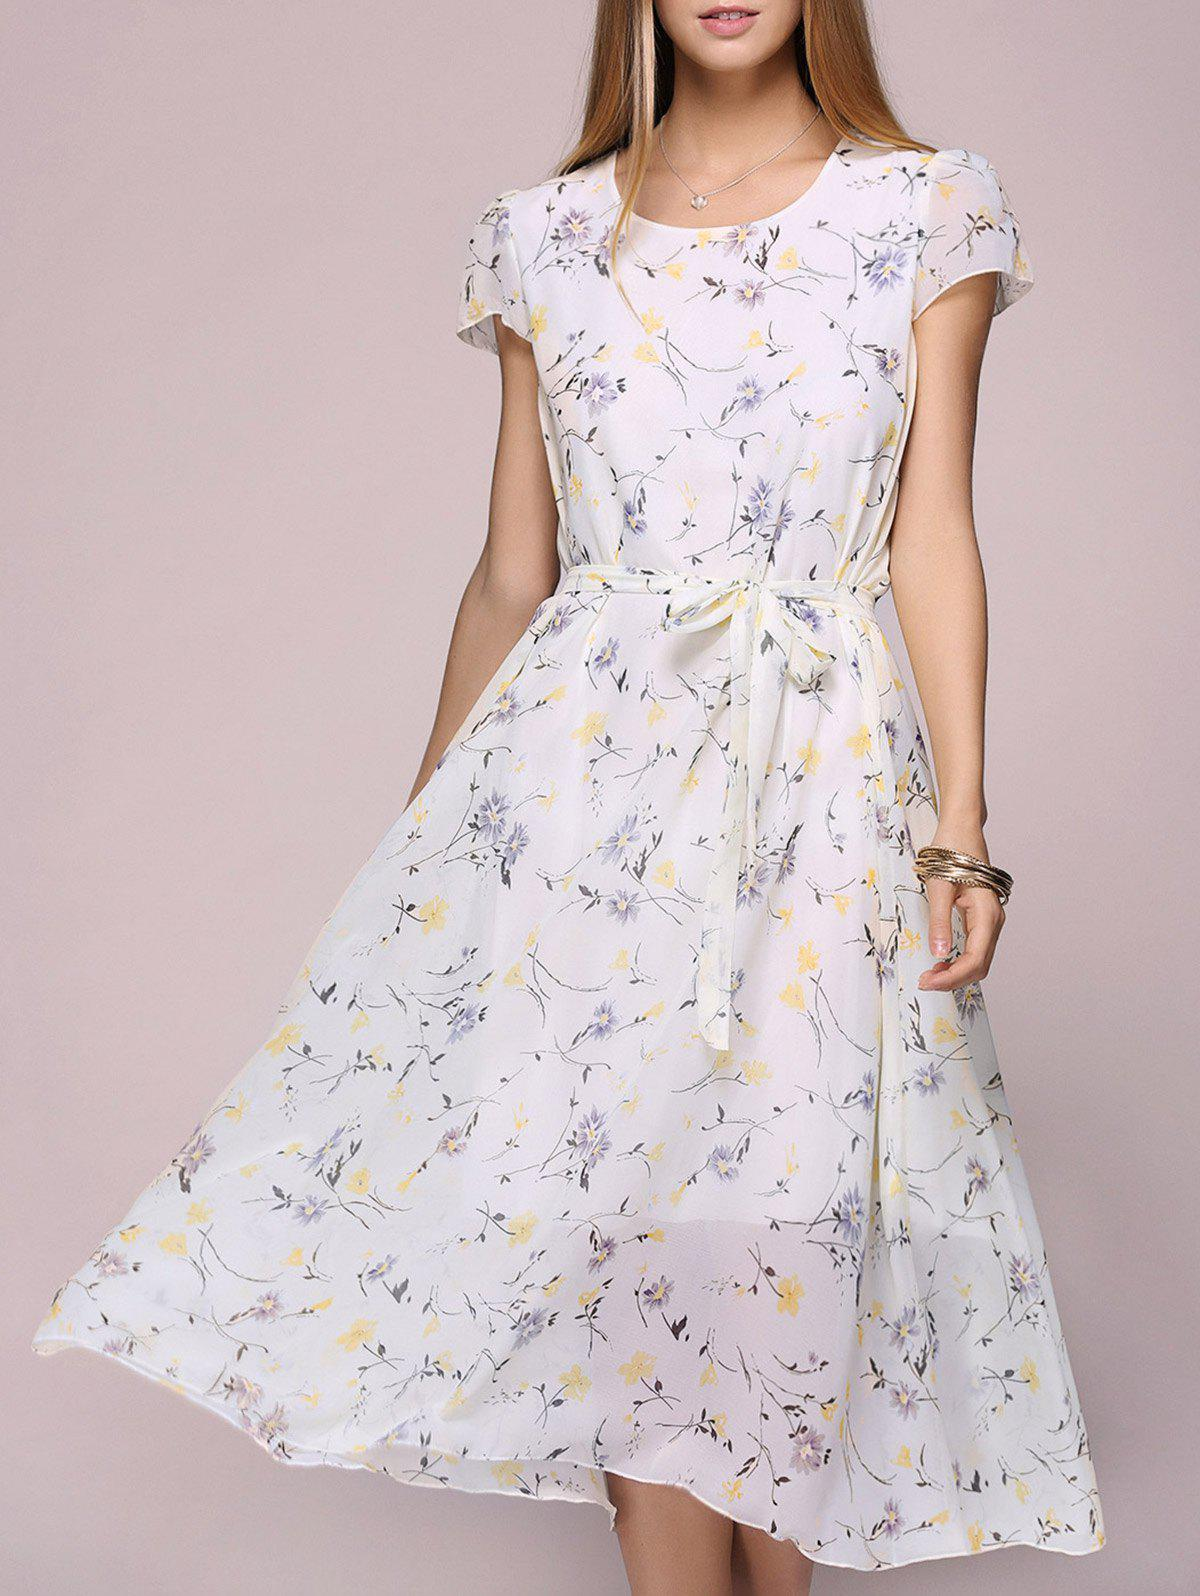 Floral Print Chiffon Tea Length Dress - LIGHT YELLOW ONE SIZE